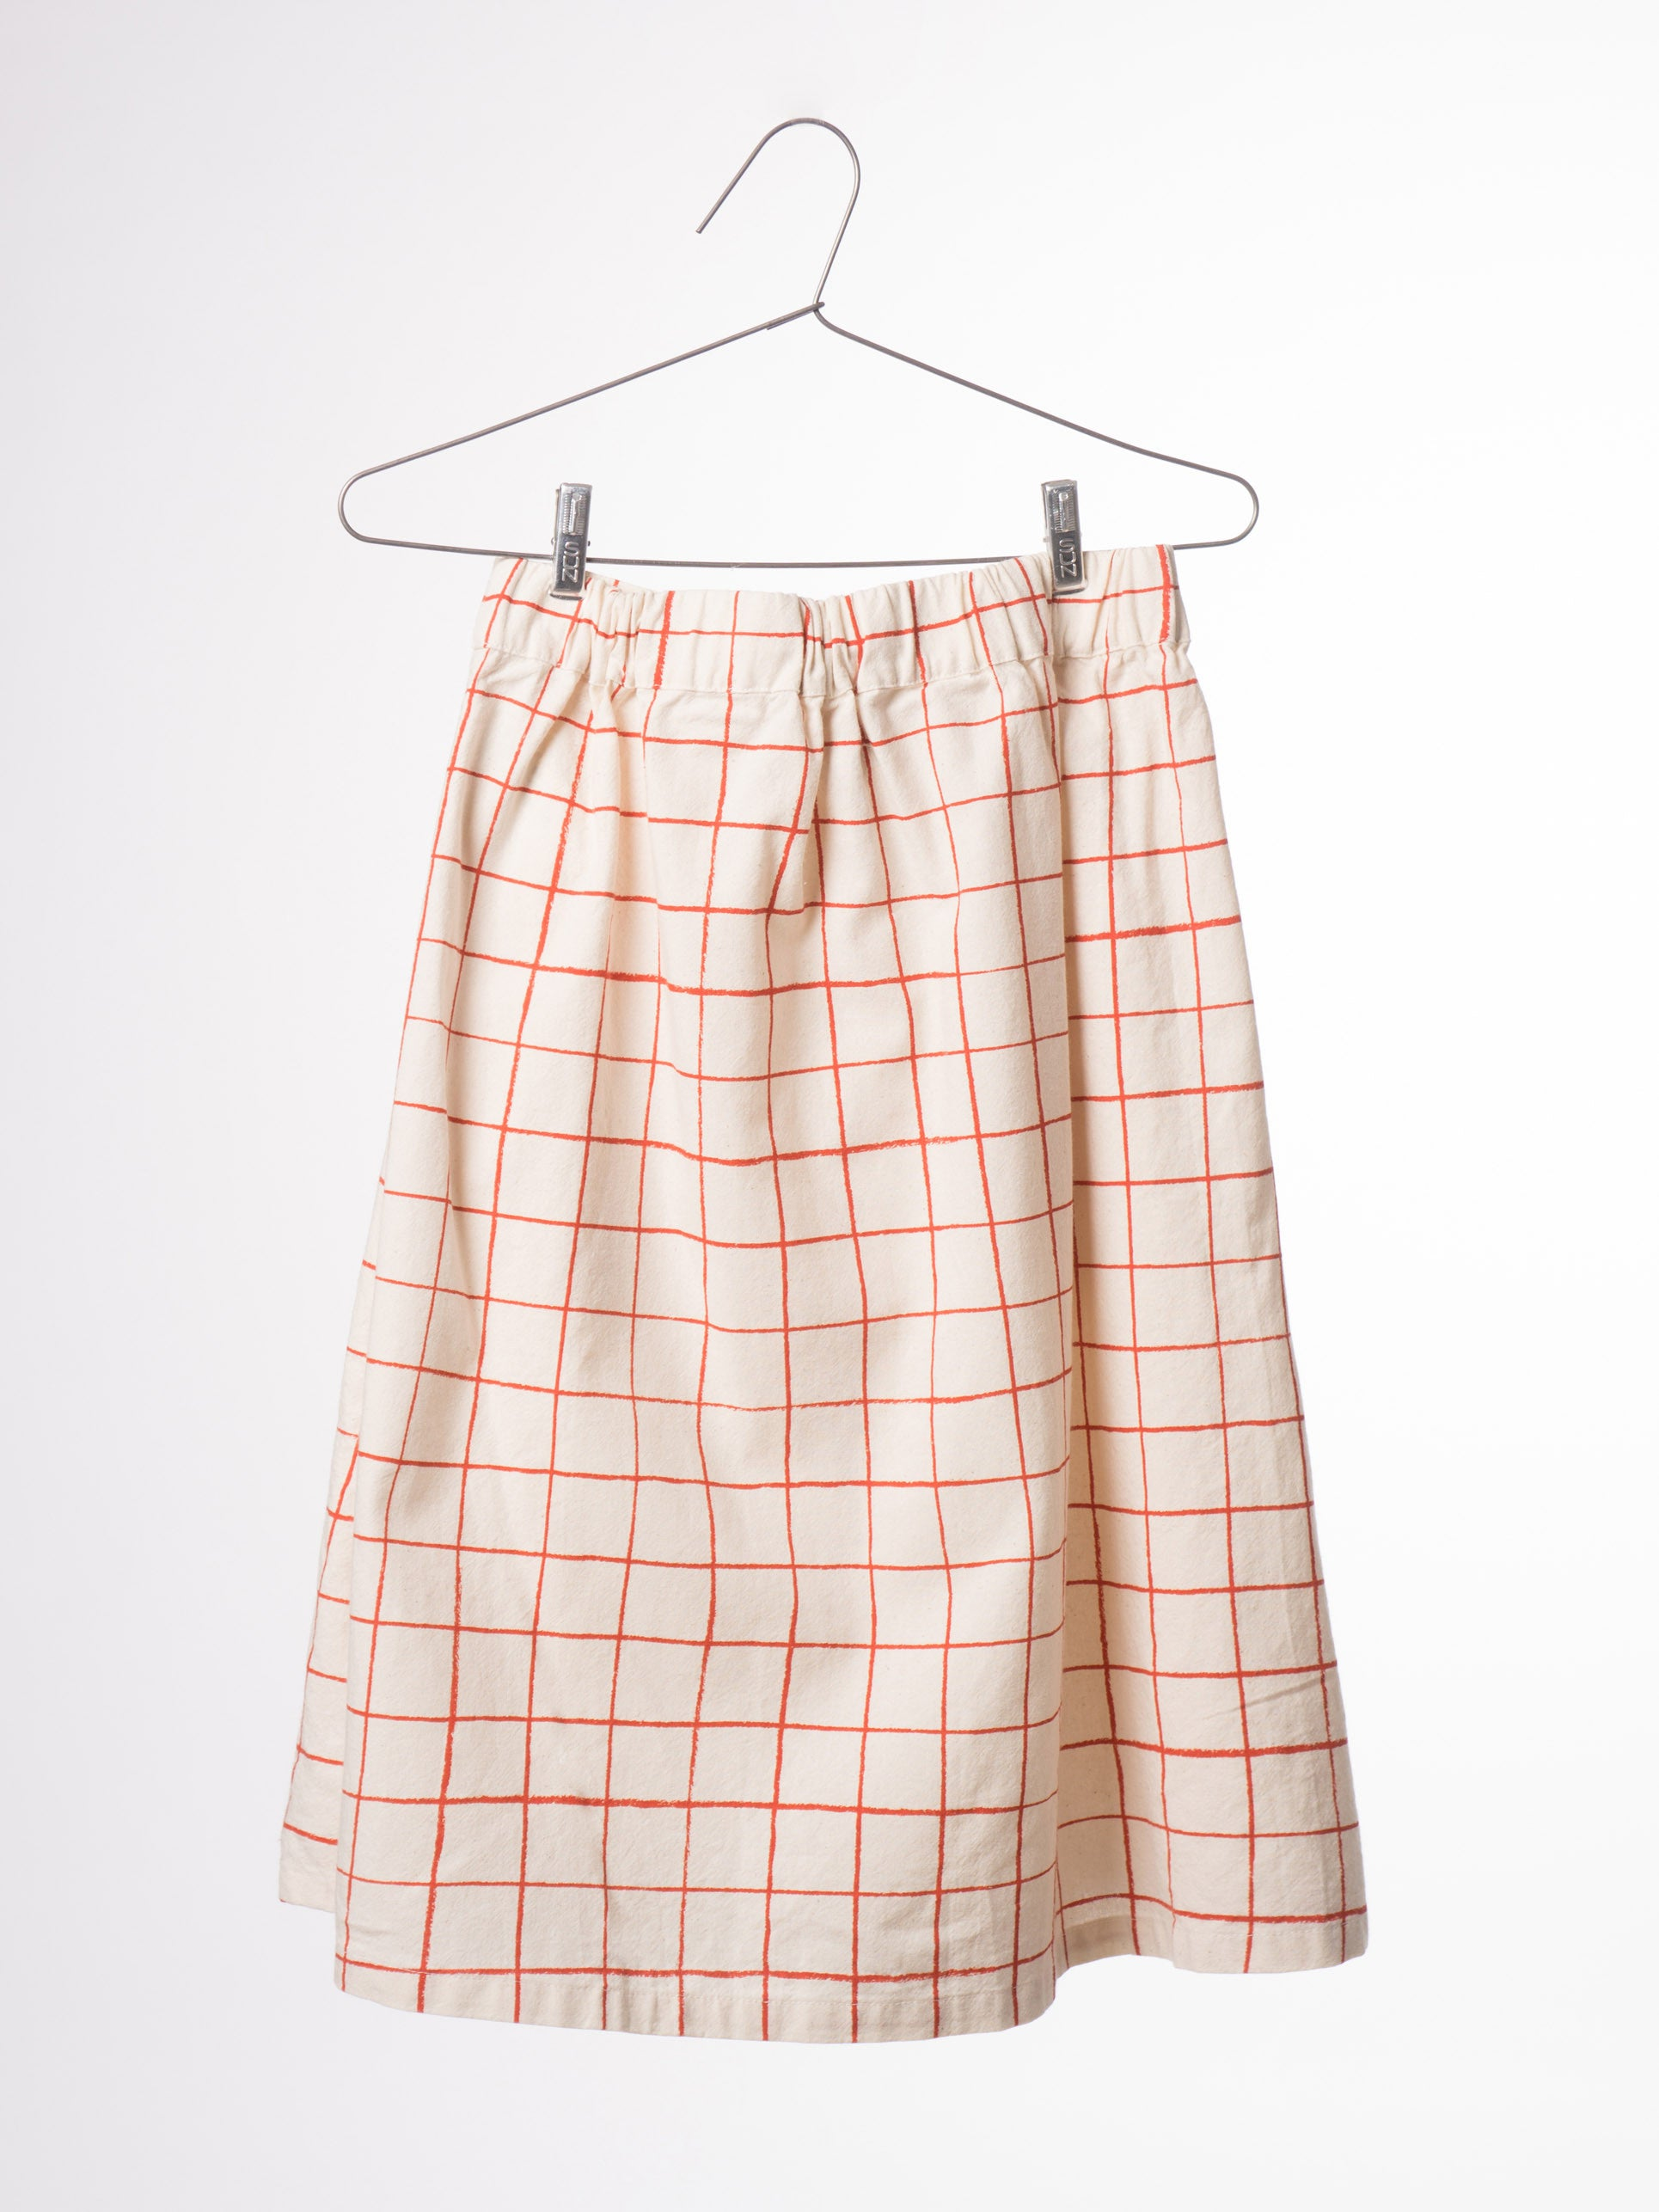 Bobo Choses BC Play Net Midi Skirt - Ladida